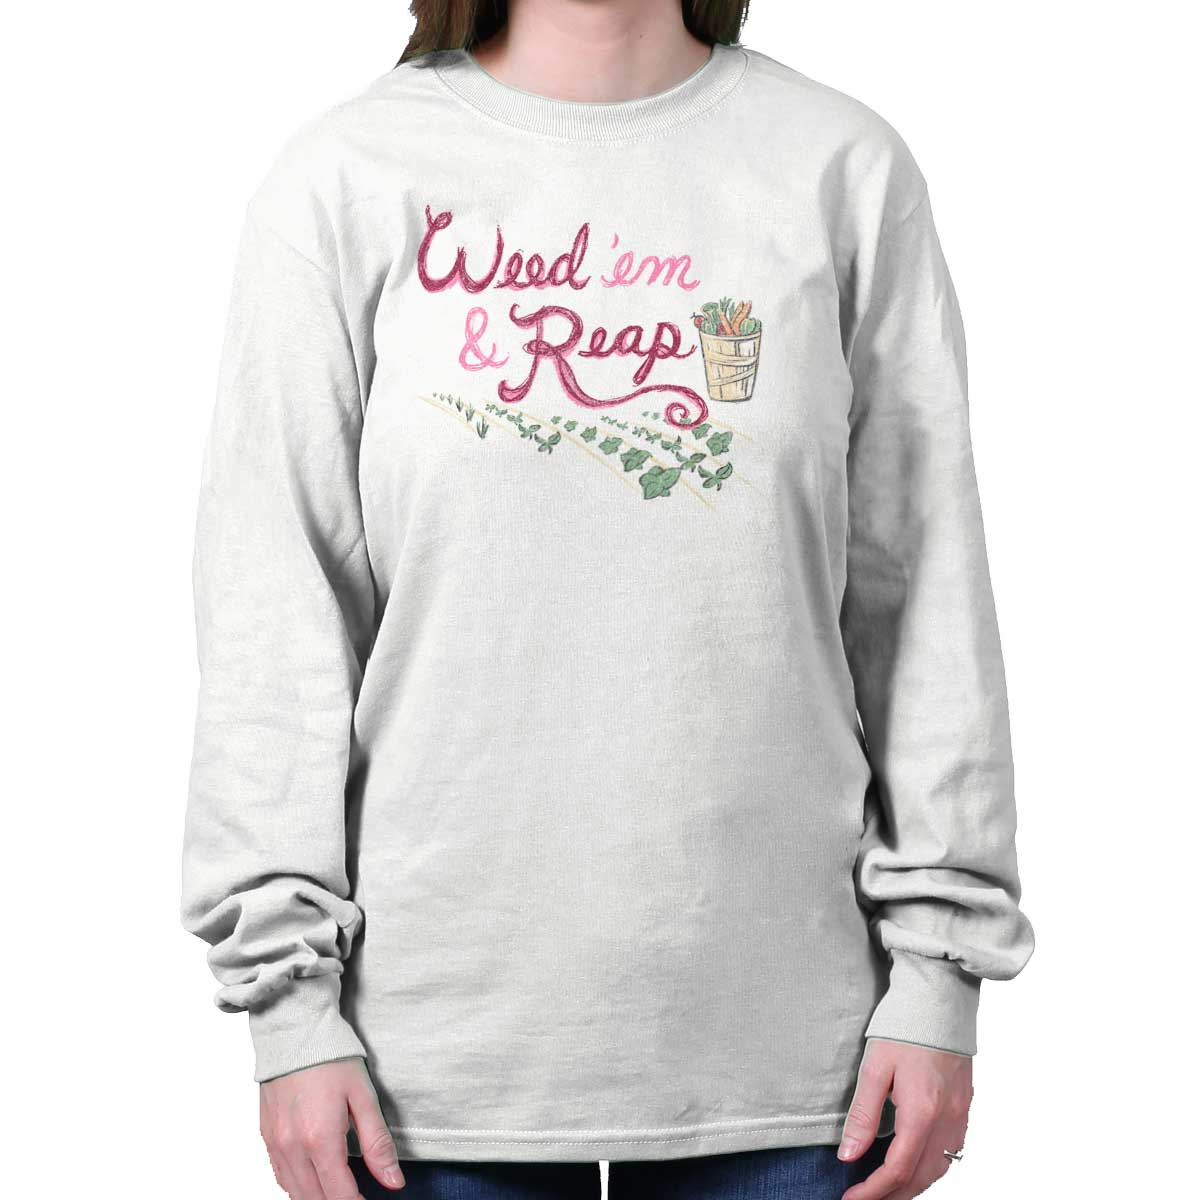 Weed and Reap Home Garden Shirt Gardening Gift 420 Blunt Cool Long Sleeve Tee